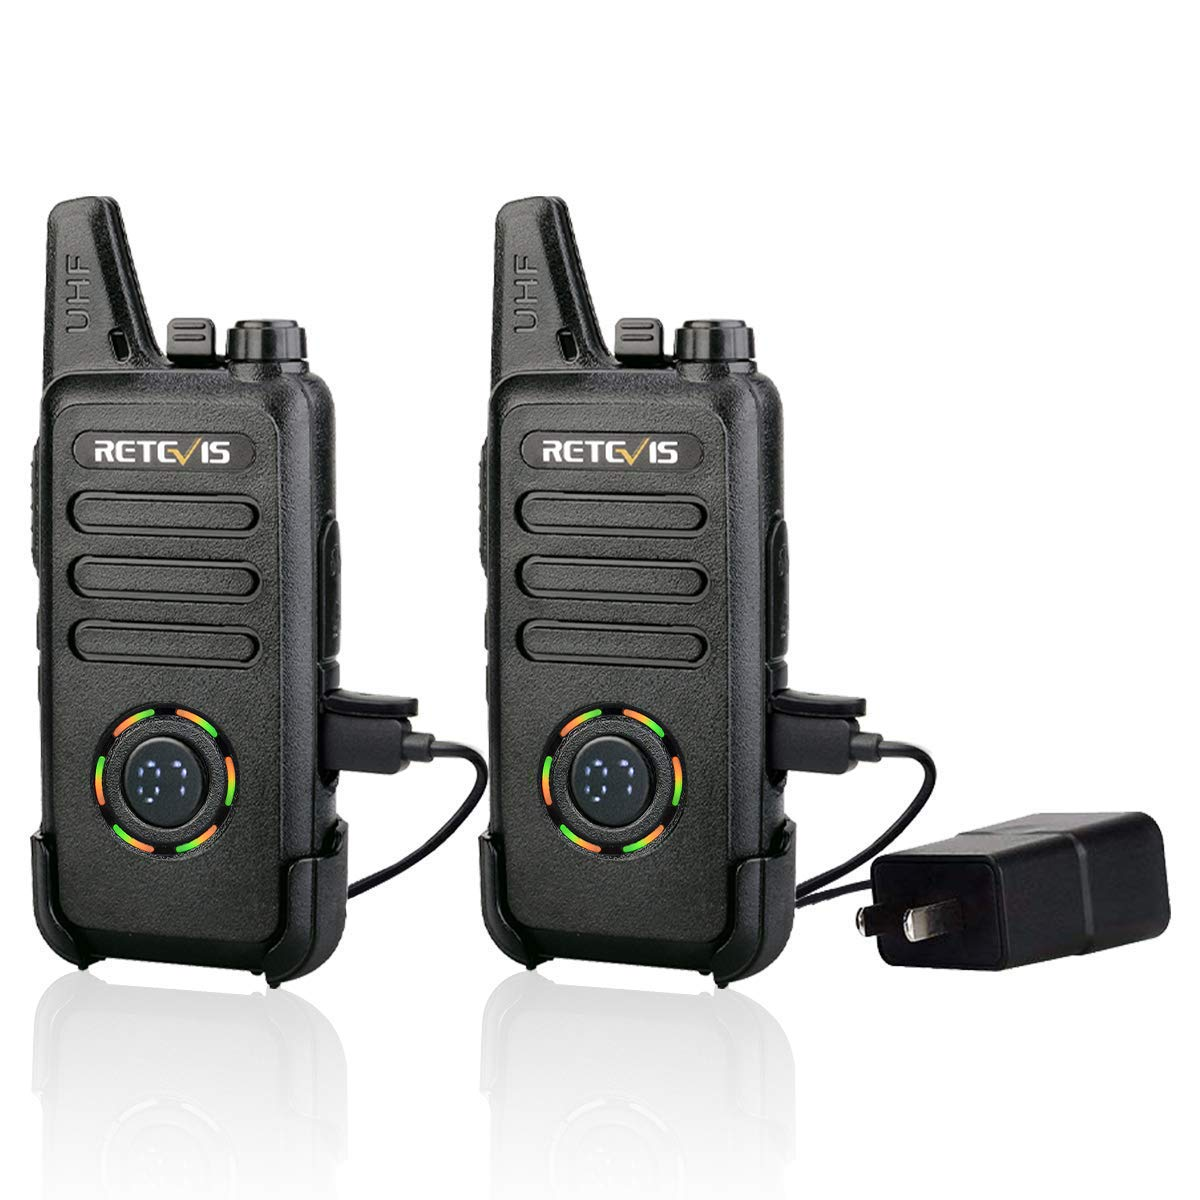 Retevis RT22S Walkie Talkies Rechargeable FRS VOX 22 Ch Alarm Lock Channel Signal Display Security Two Way Radio for Adults 2 Pack